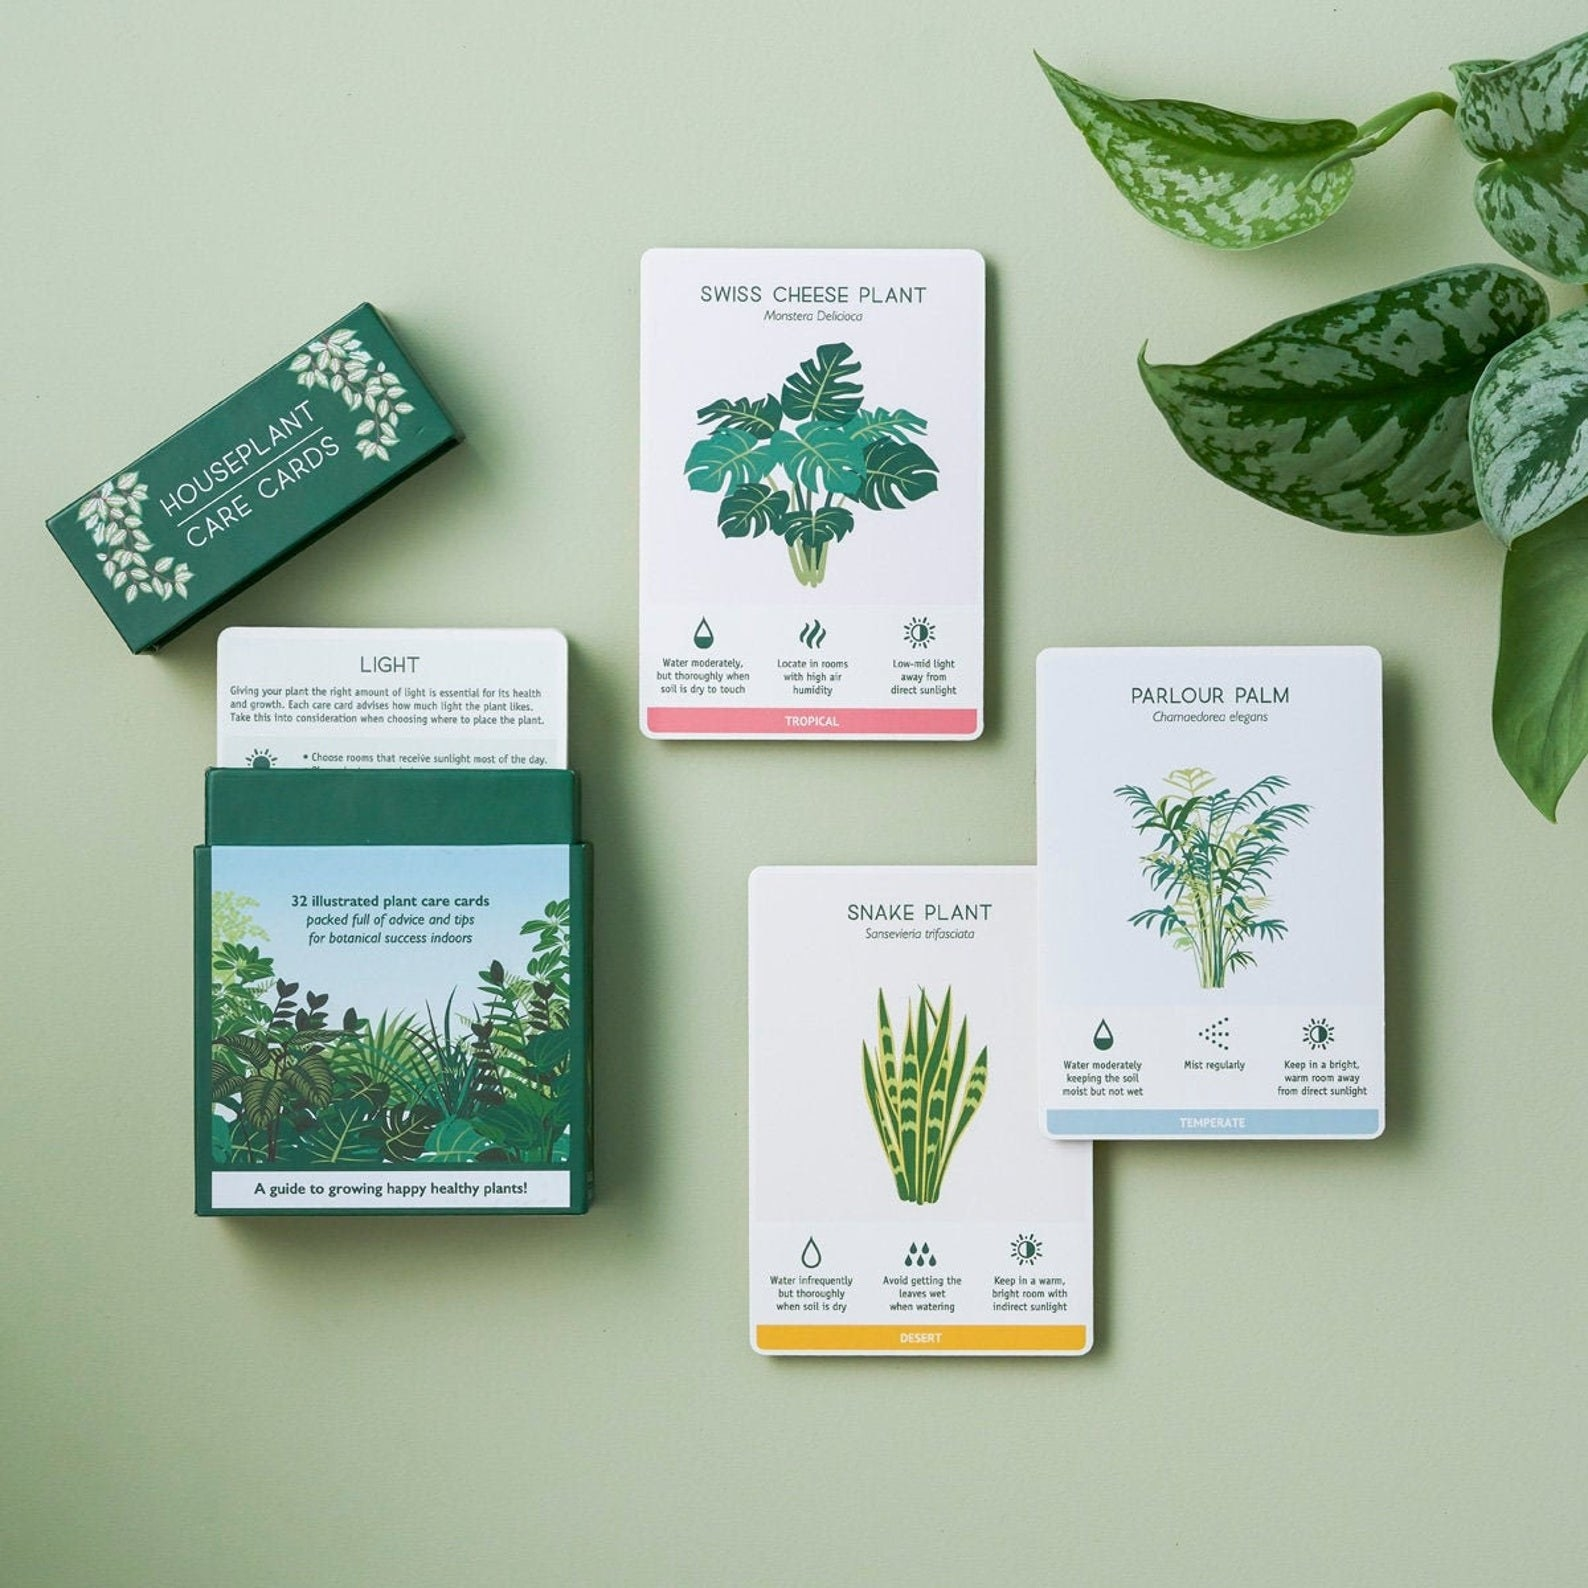 The deck of illustrated cards with facts about different plants